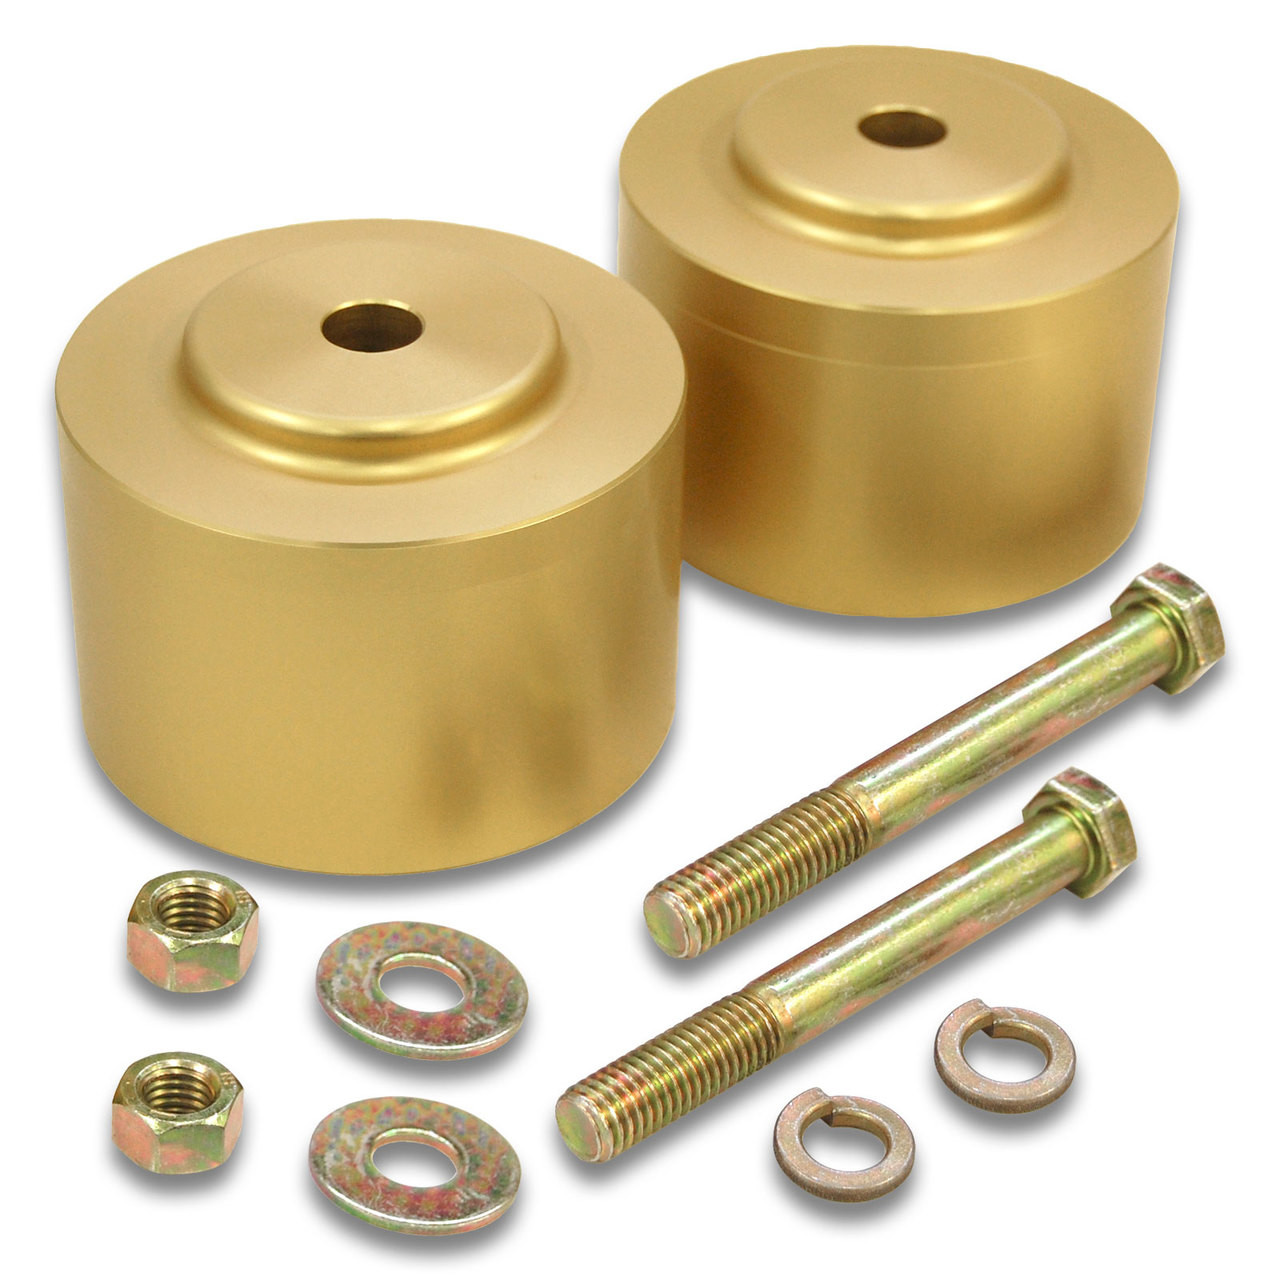 "MP1606- 2.5"" Rear Coil Spring Spacer Lift Kit for 1960'S GM RWD Passenger Cars 